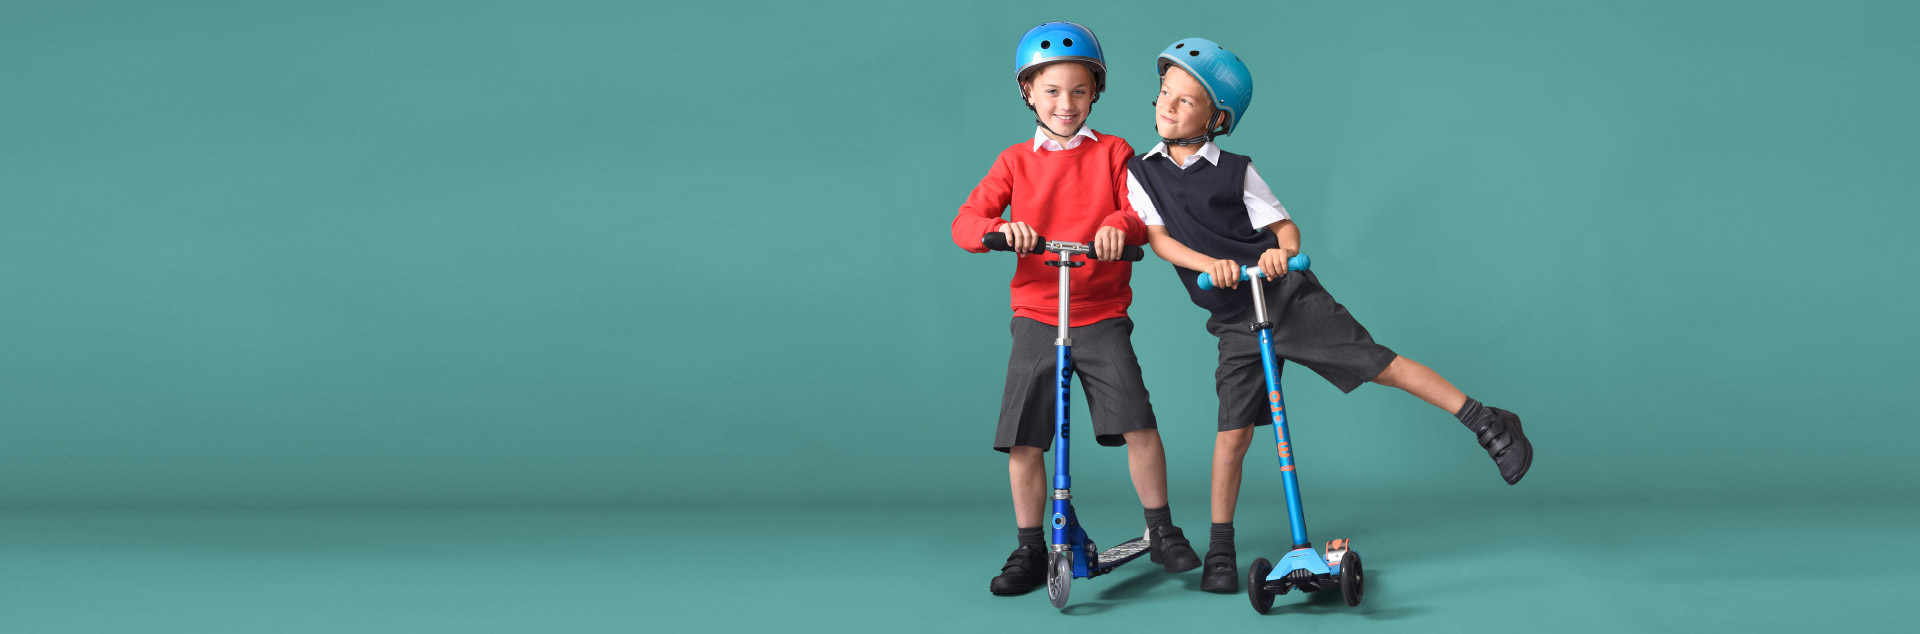 Scooters & Helmets